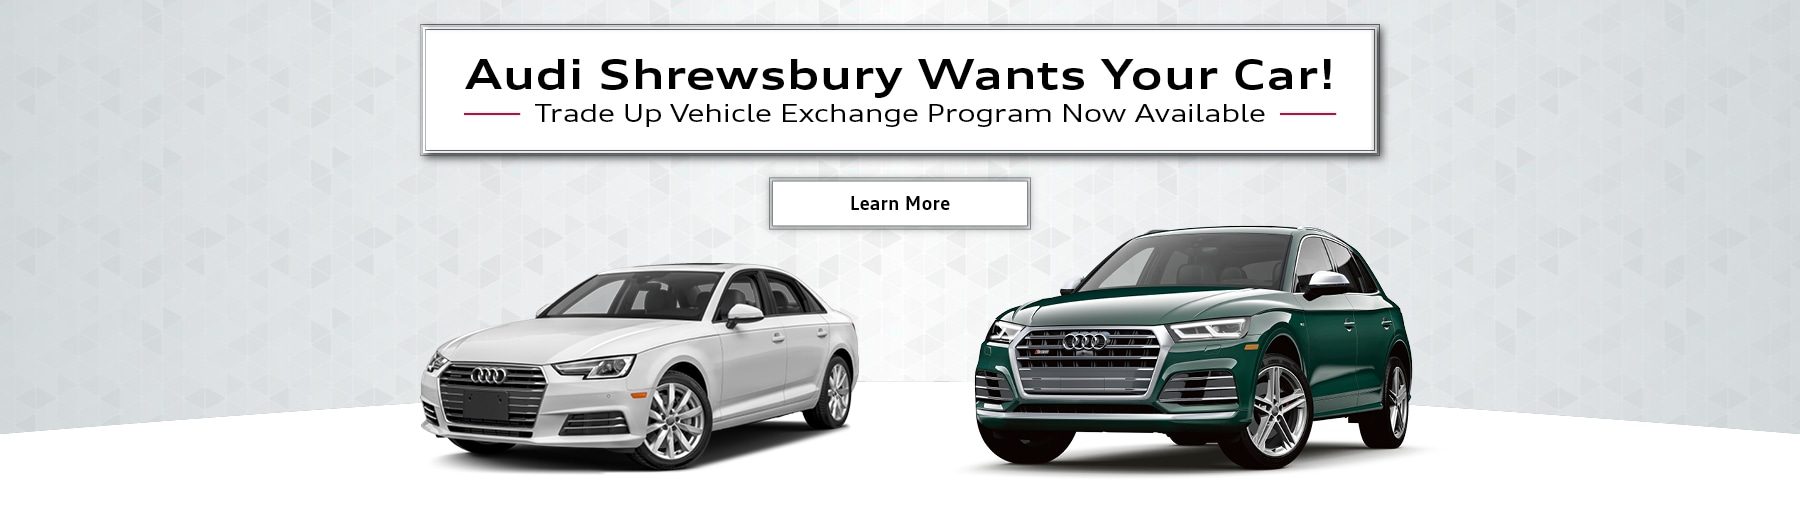 lease payment screenscape per hst audi payments month promotions from included june